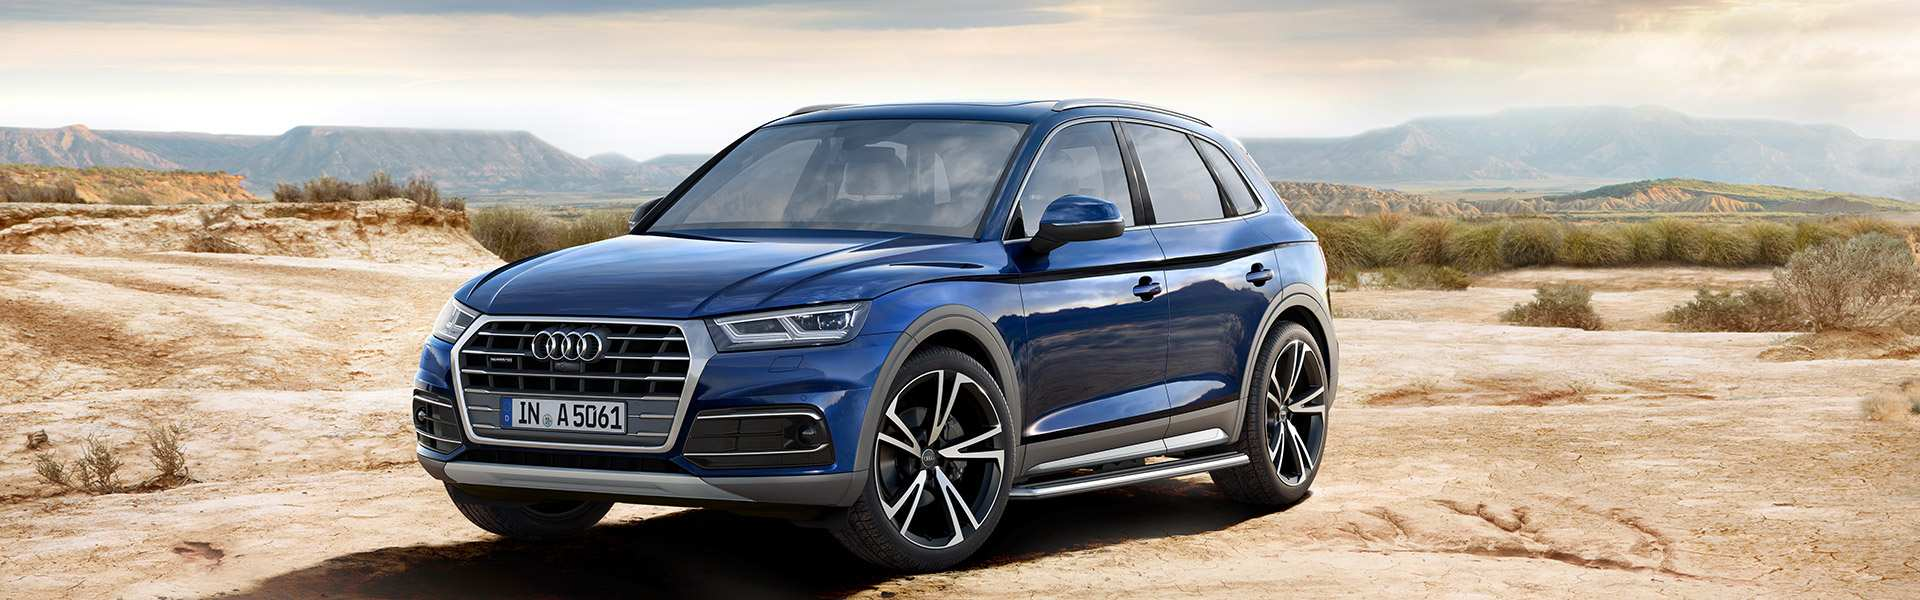 96 The Audi X5 2020 Overview